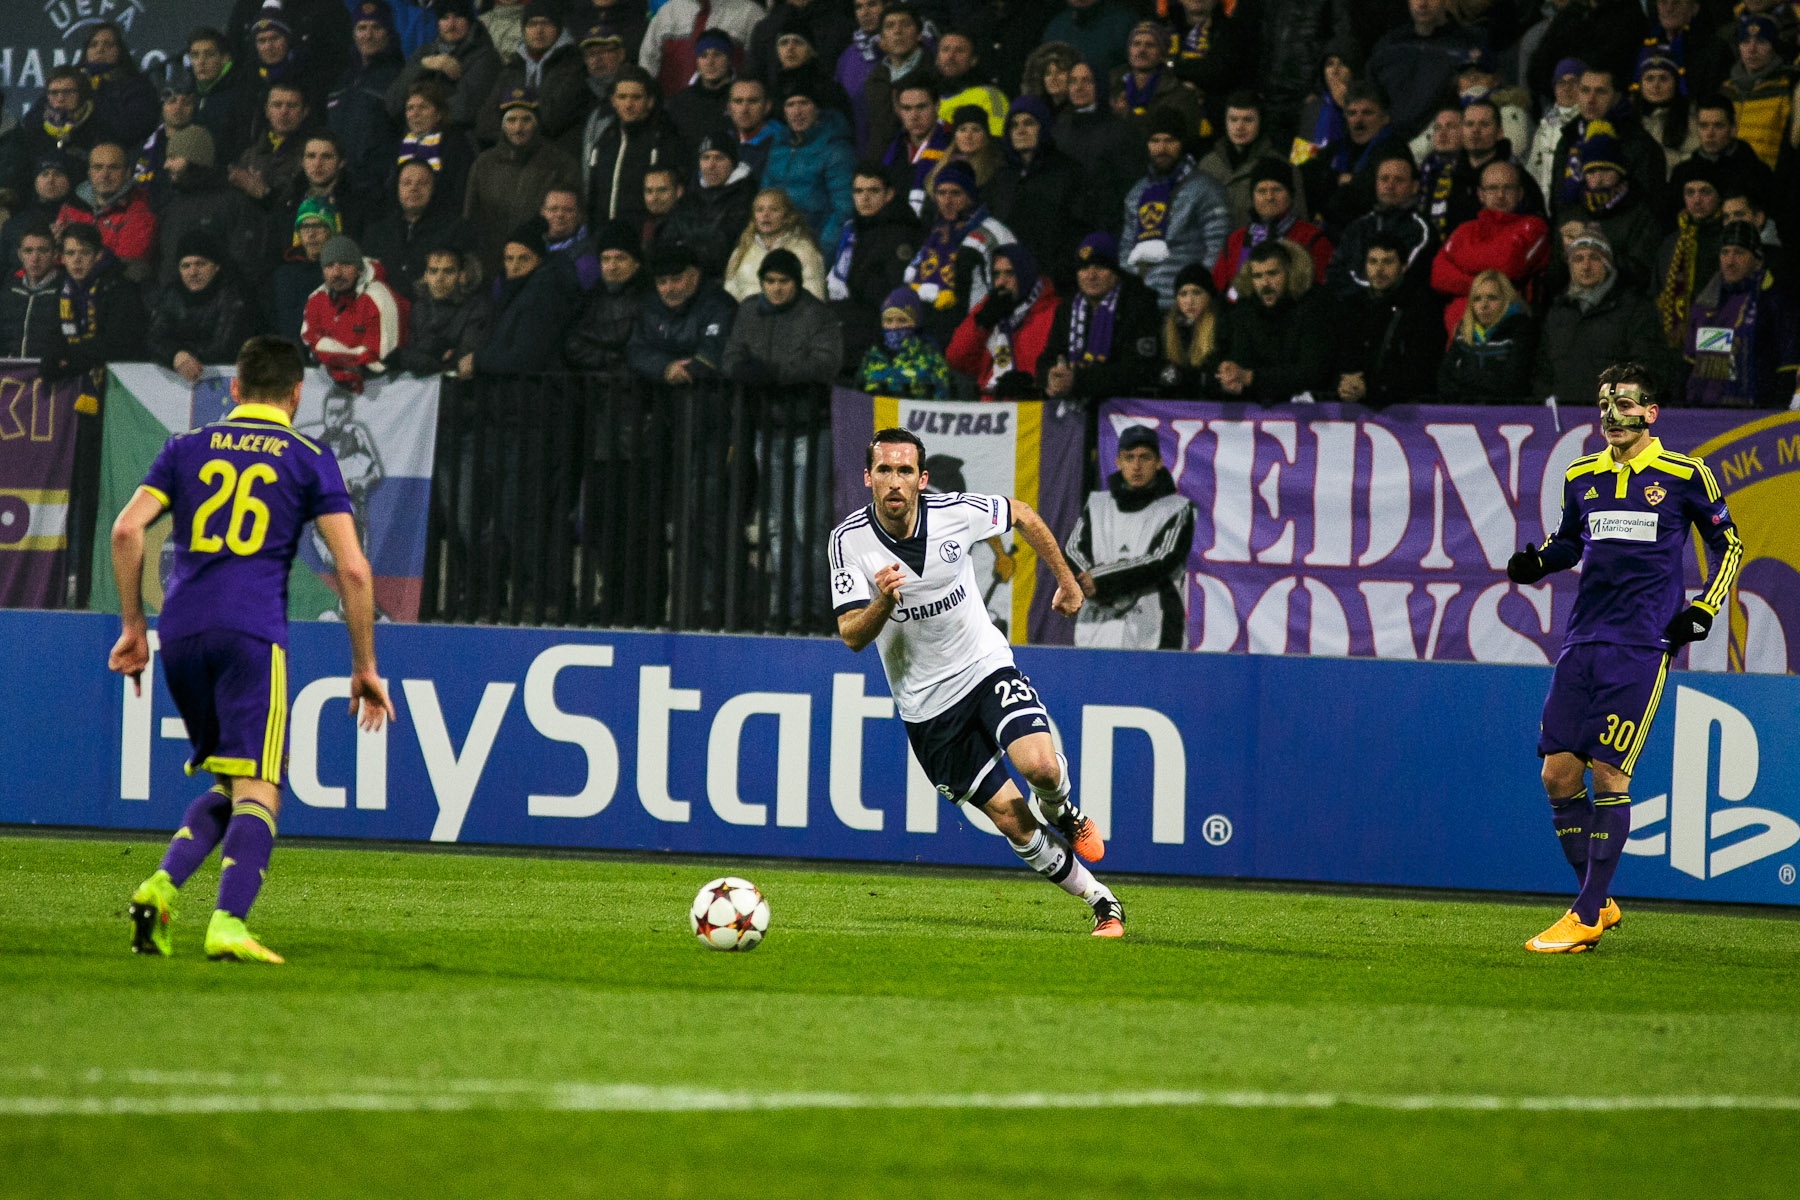 Christian Fuchs of FC Schalke 04 in action during the UEFA Champions League Group G match on December 10 in Maribor, Slovenia.